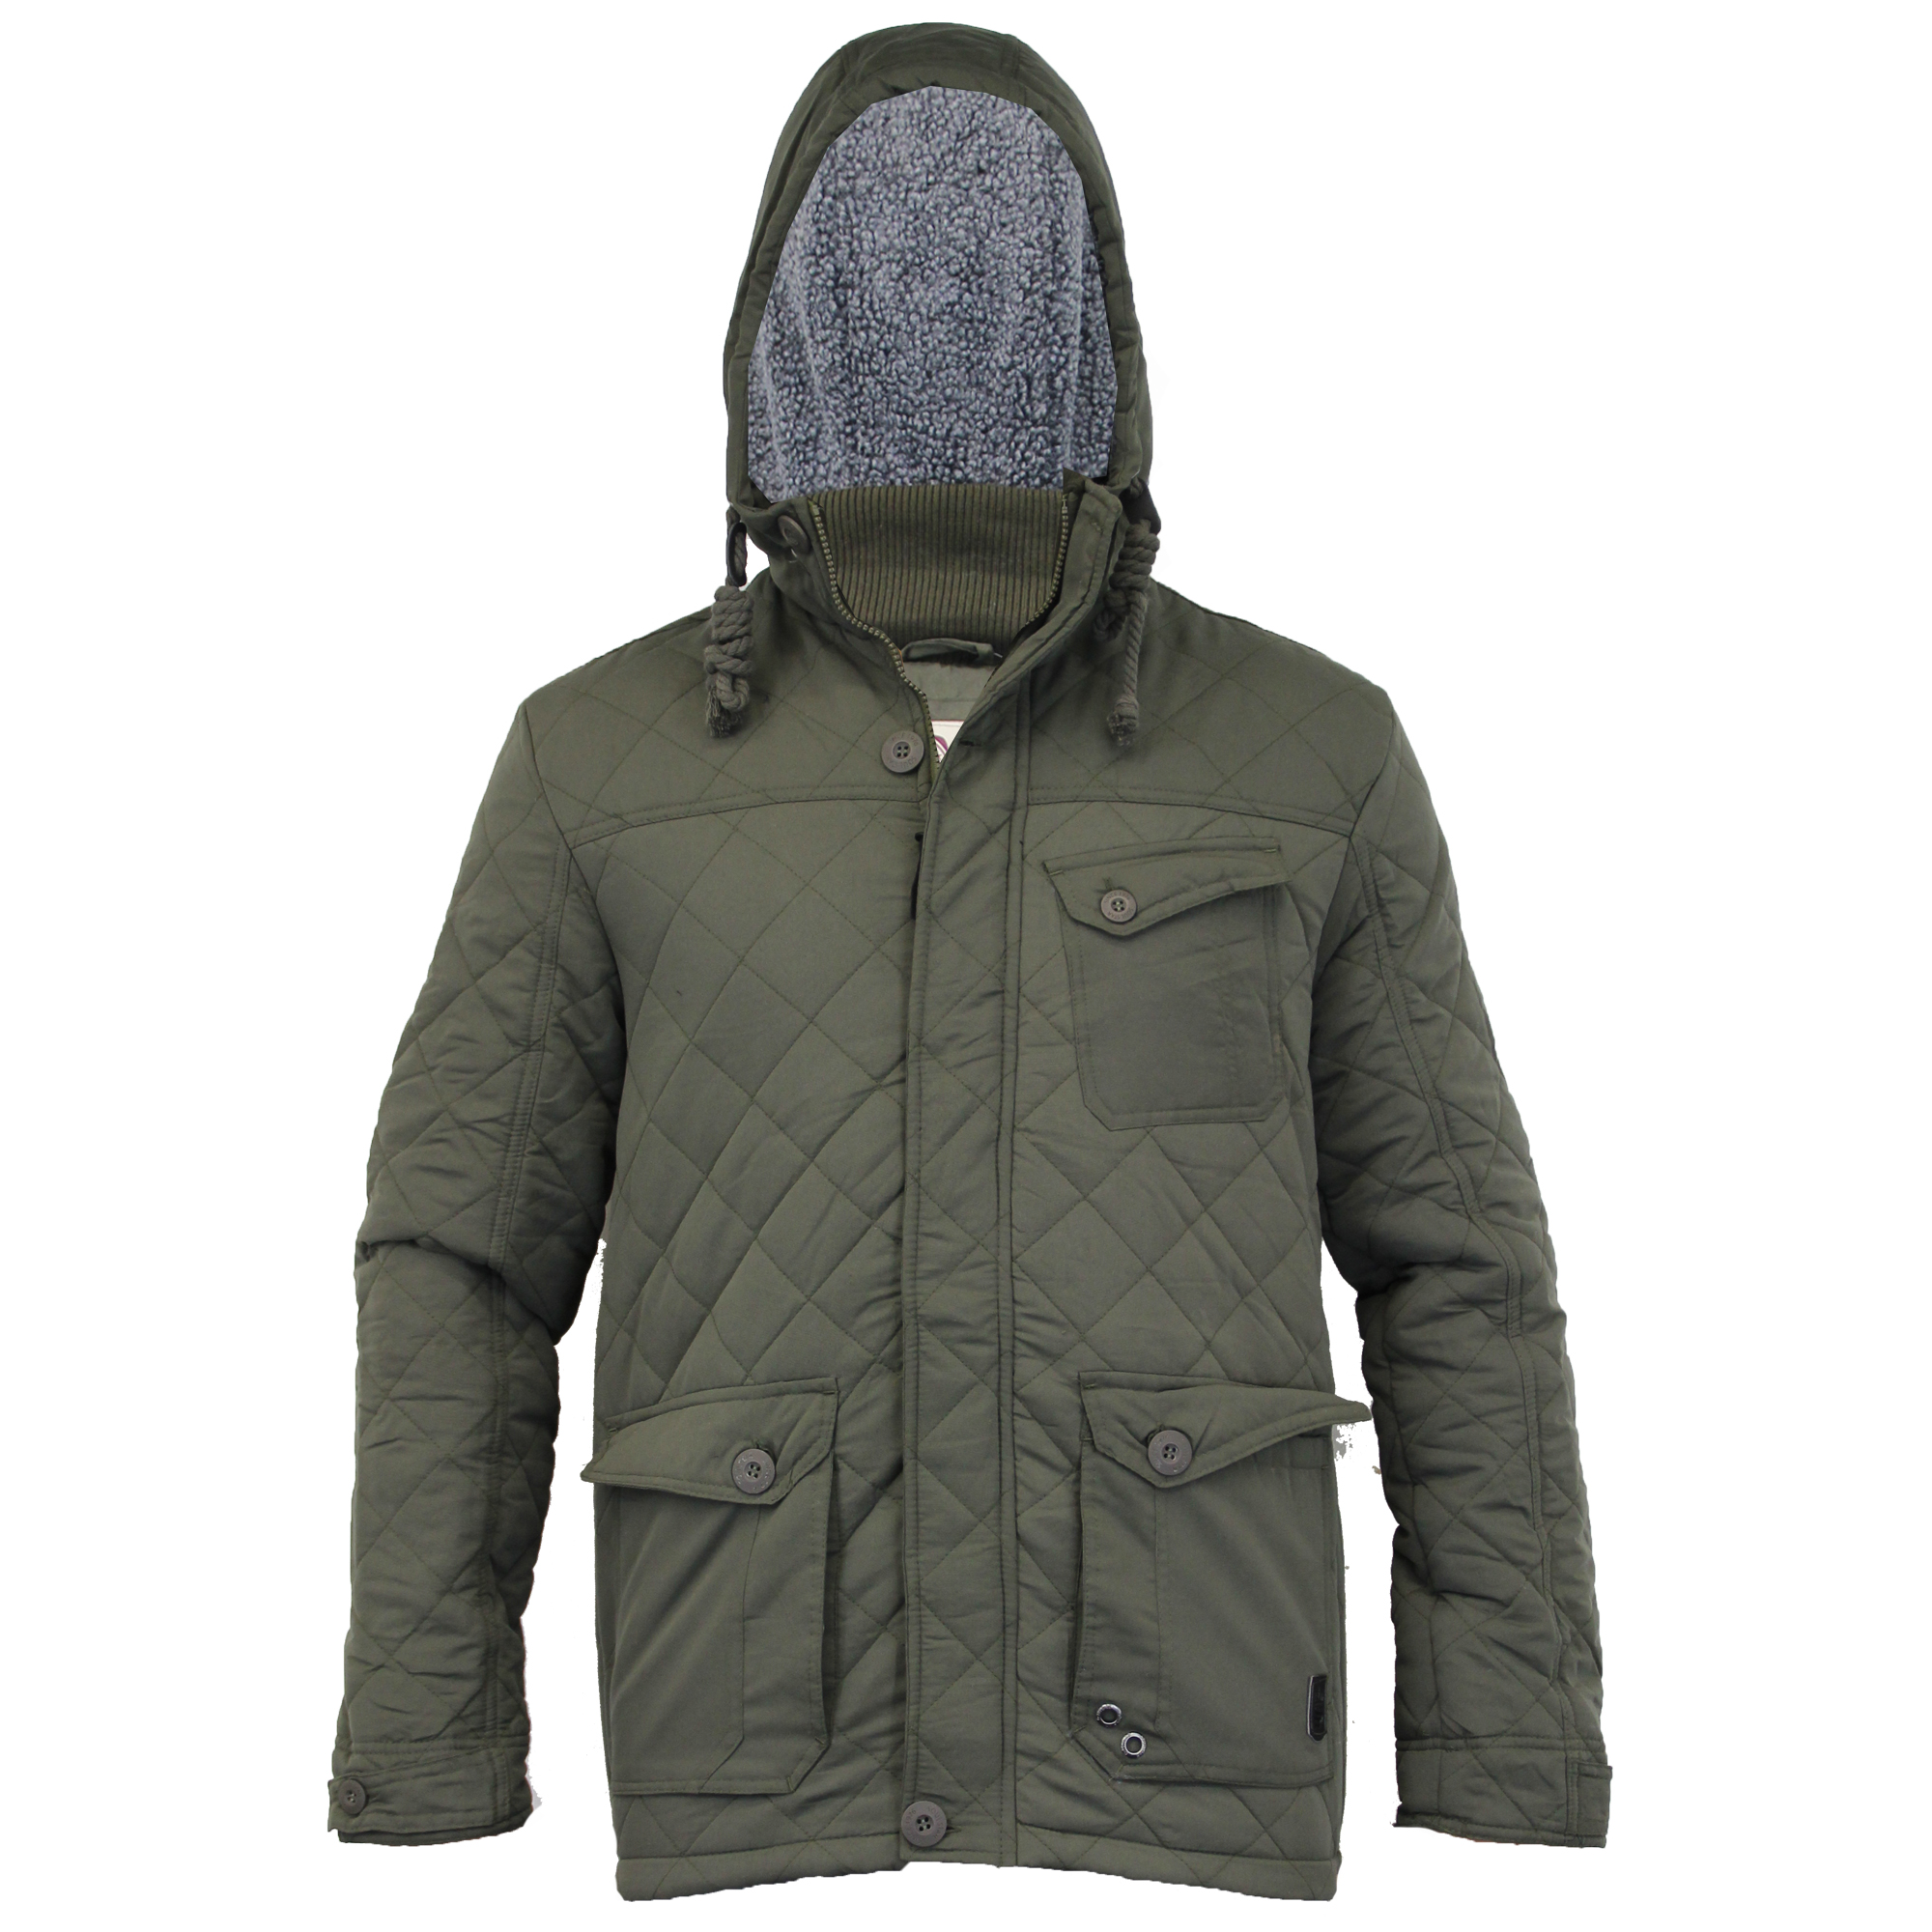 DigerLa Men's Winter Cotton-Padded Parka Jacket With Hood. by DigerLa Mens. $ $ 35 out of 5 stars 4. Promotion Available; Promotion Available; Promotion Available; See Details. Promotion Available and 3 more promotions. Mintsnow Womens Hooded Warm Winter Coats Faux Fur Lined Parkas Black Pink Green Blue Red.